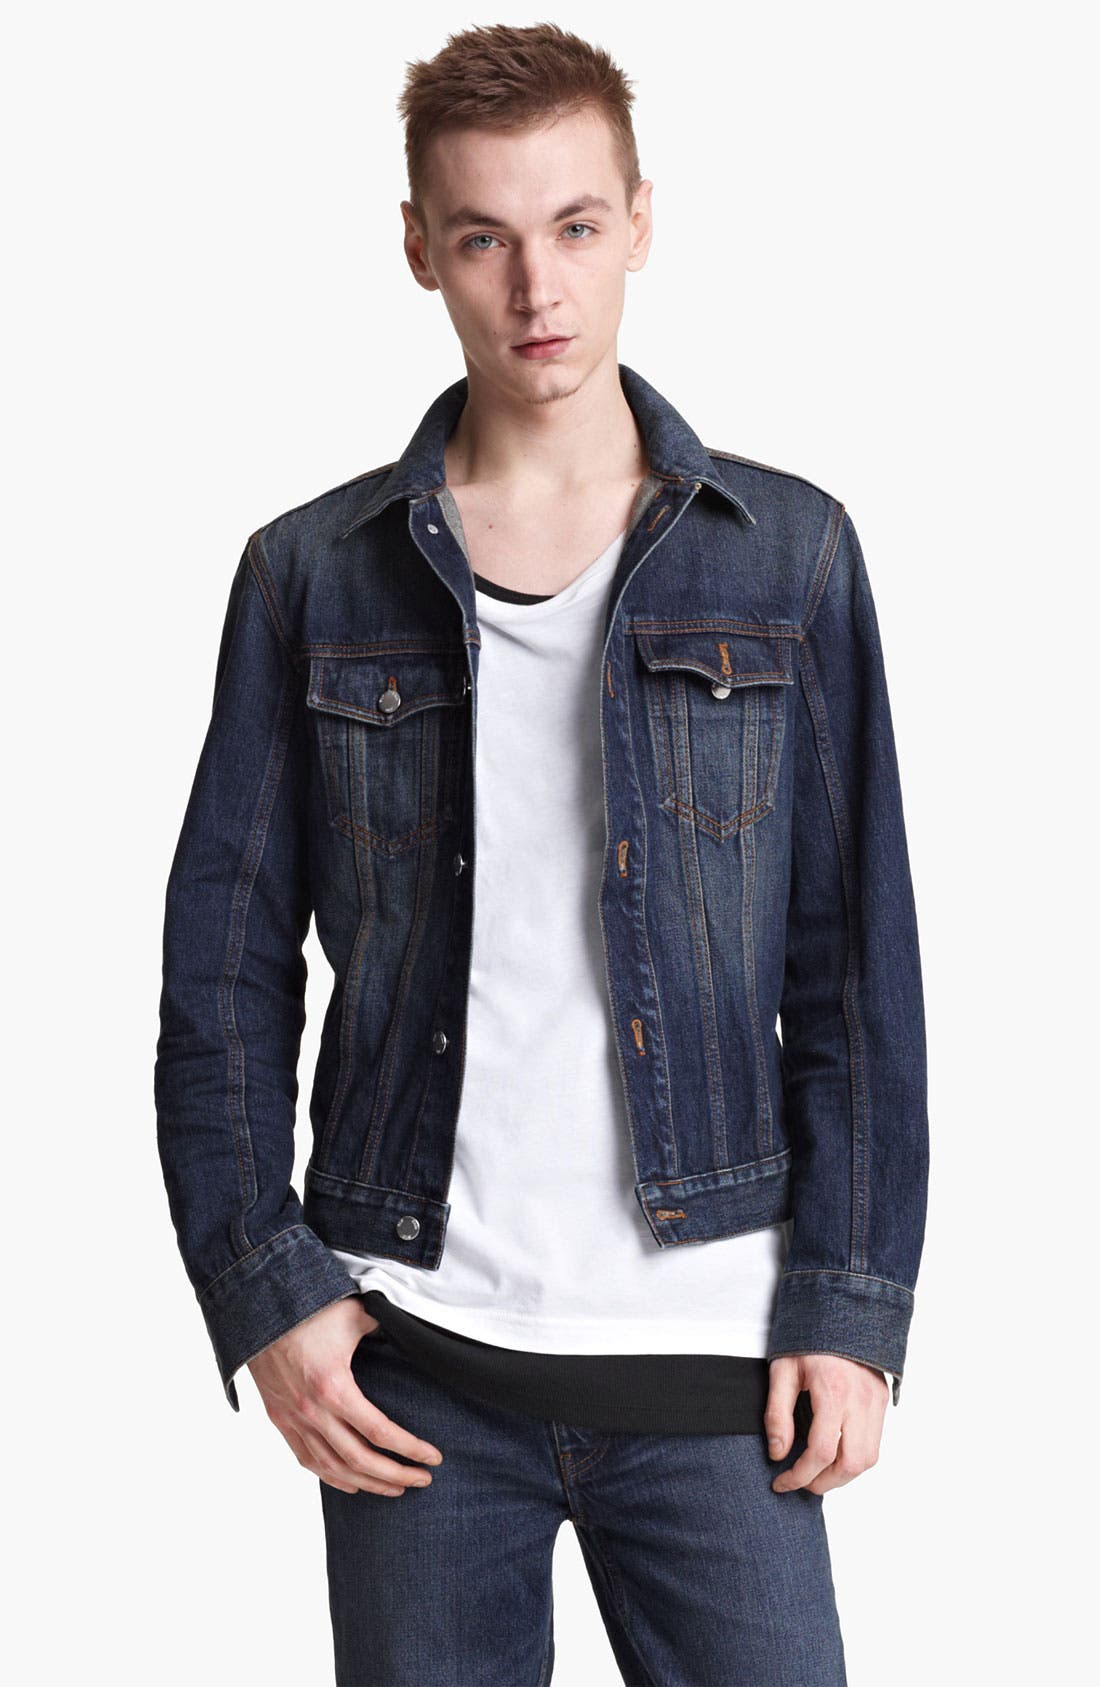 Alternate Image 1 Selected - BLK DNM 'Jeans Jacket 5' Stonewashed Denim Jacket